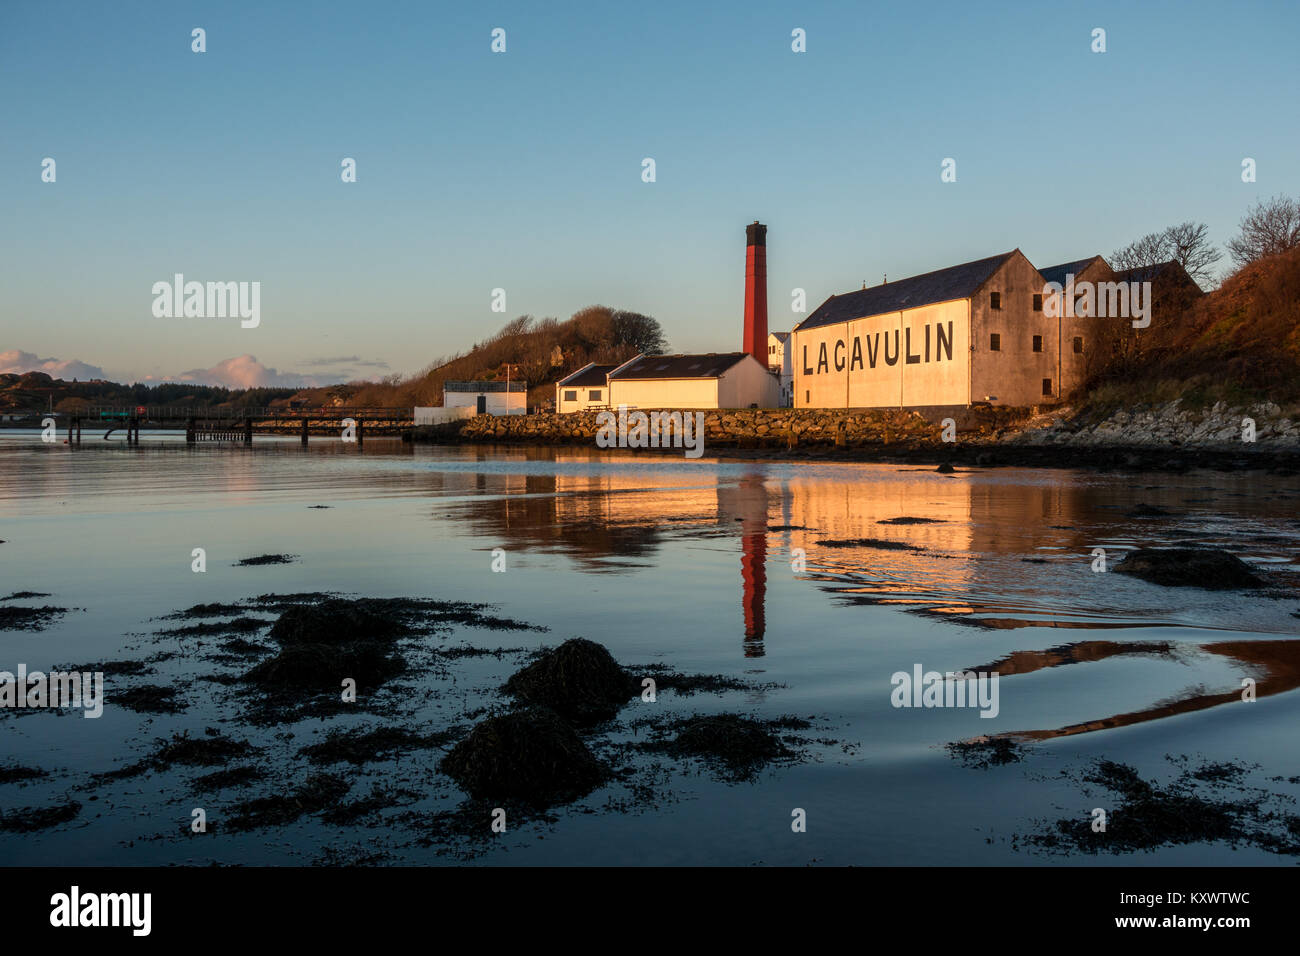 Lagavulin Whisky Distillery reflecting in the calm sea at dawn - blue sky, sunny day, Isle of Islay, Scotland - Stock Image